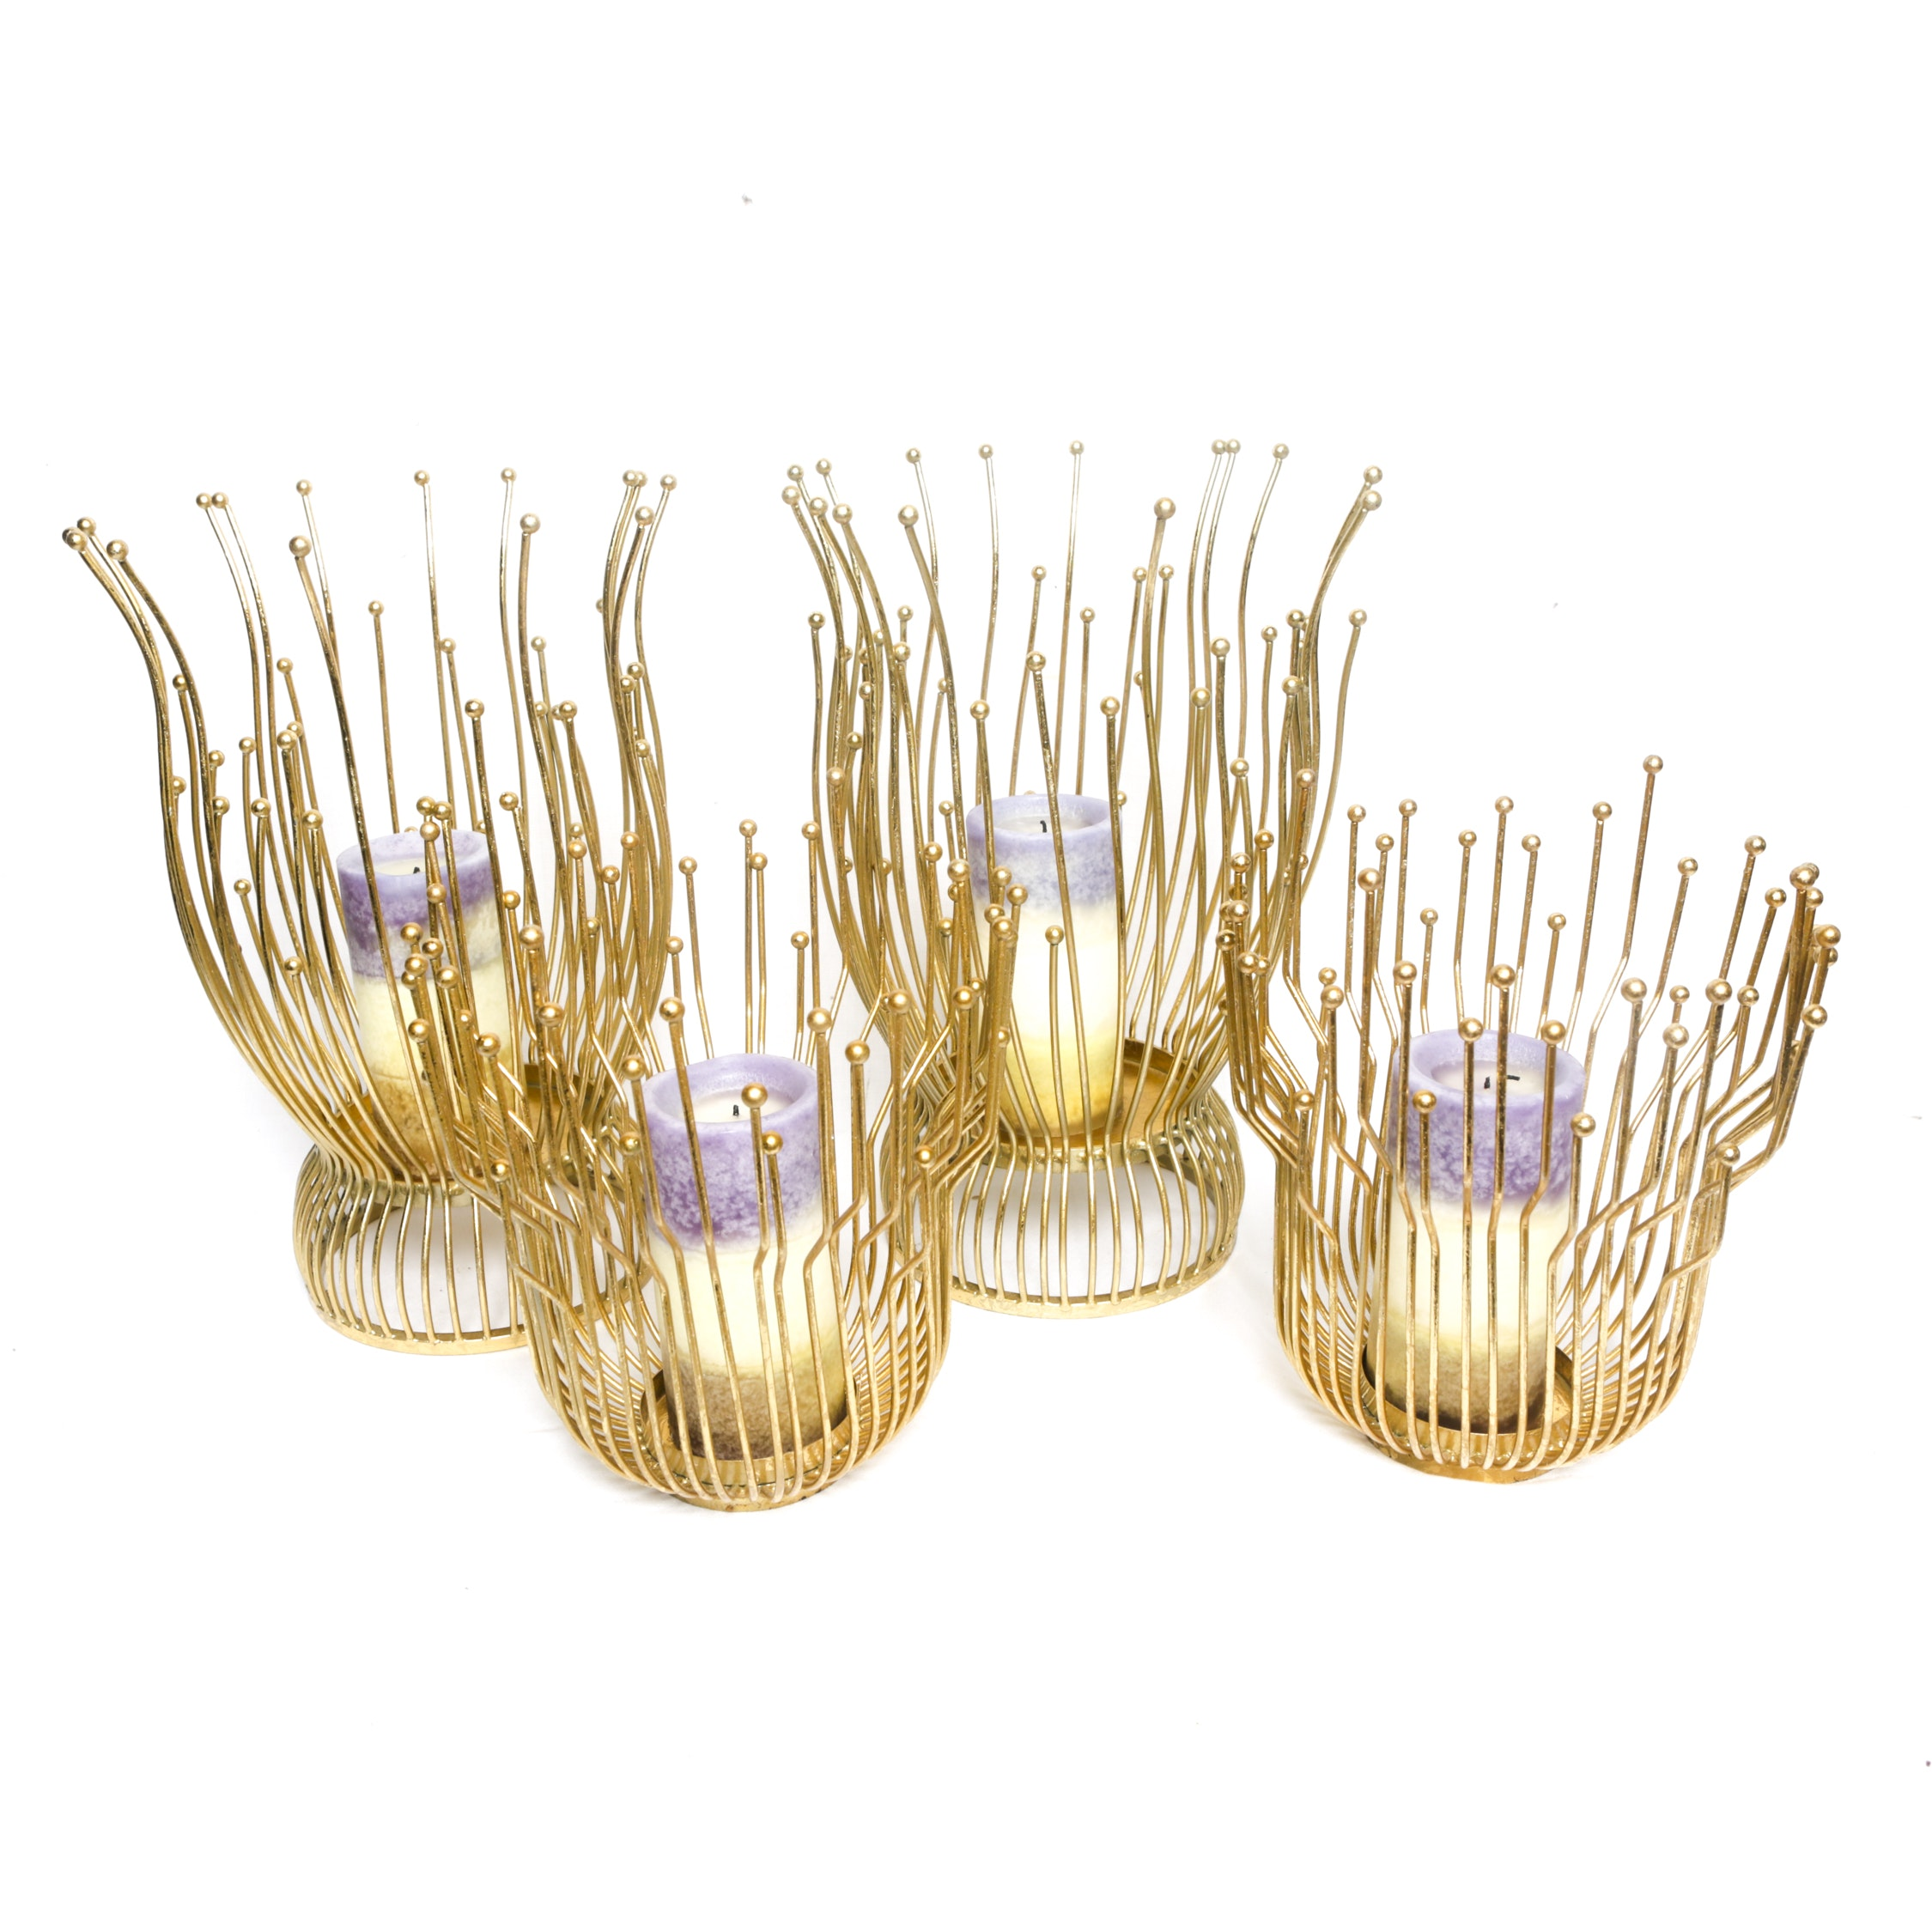 Ball Top Multi-Pronged Gold Finish Metal Candleholders with Candles